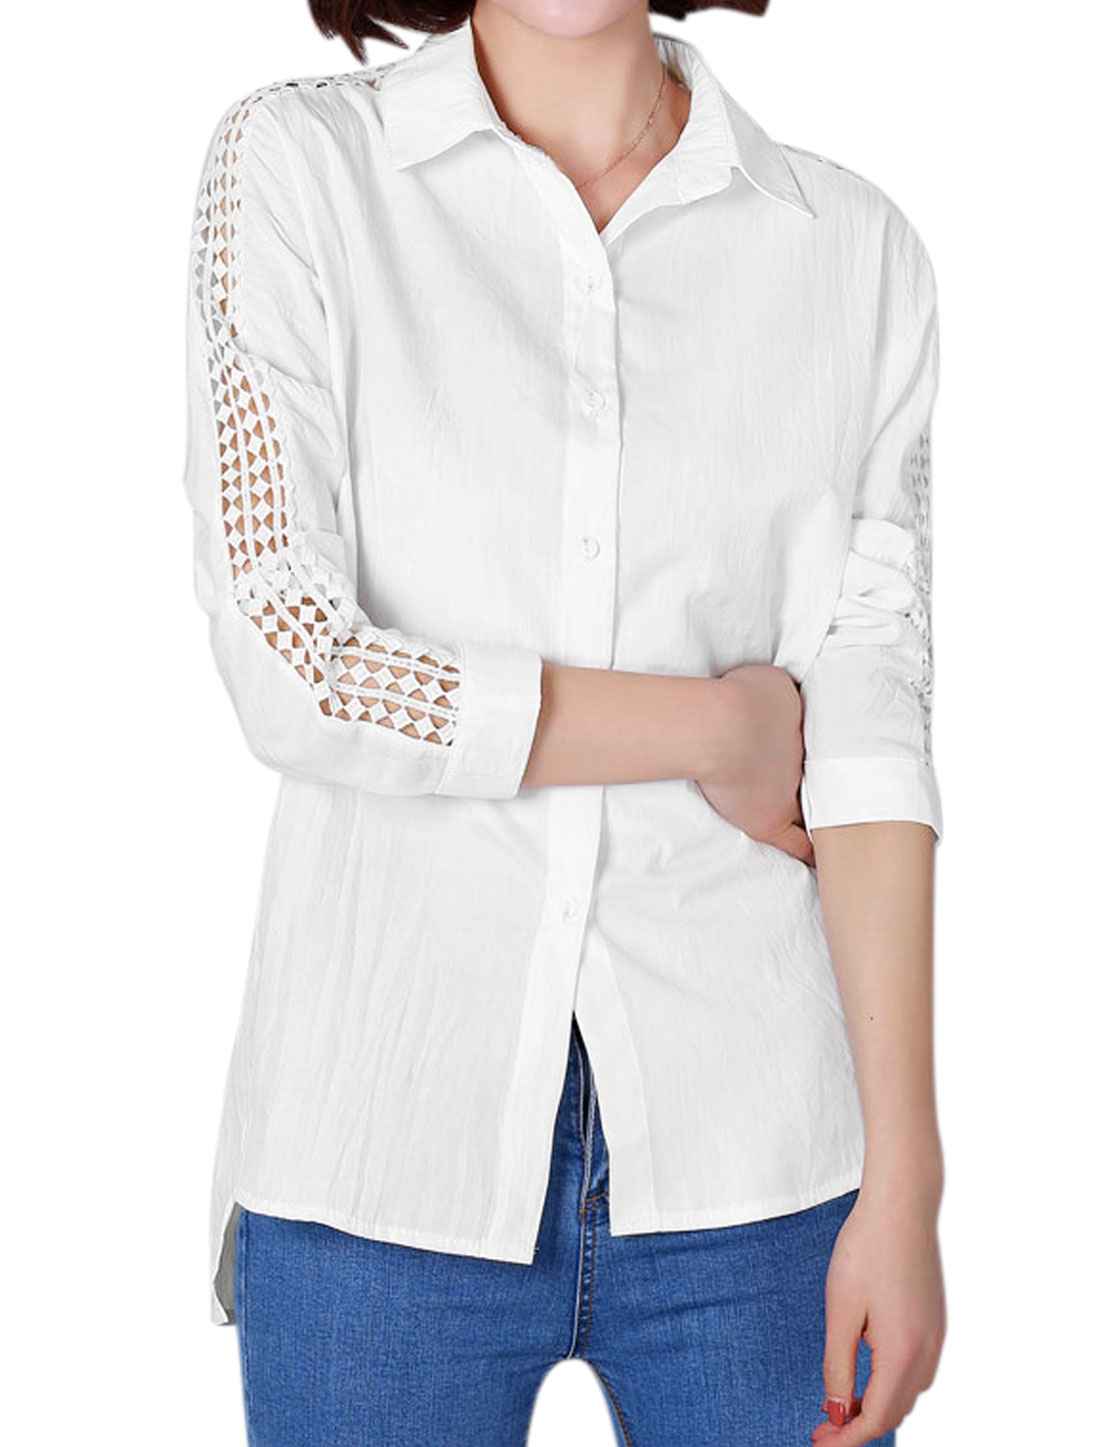 Women Hollow Out Sleeves Paneled High Low Tunic Shirt White M